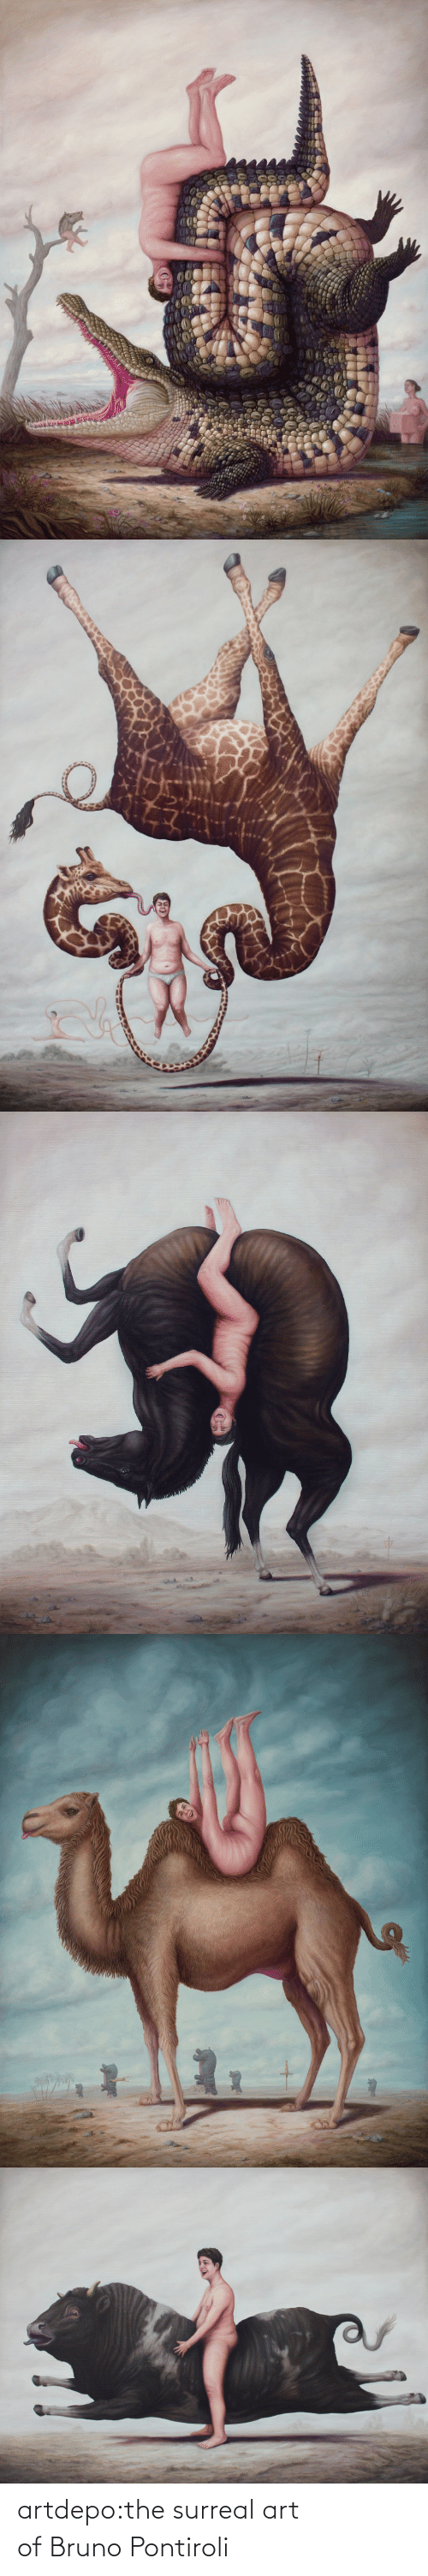 surreal: artdepo:the surreal art of Bruno Pontiroli